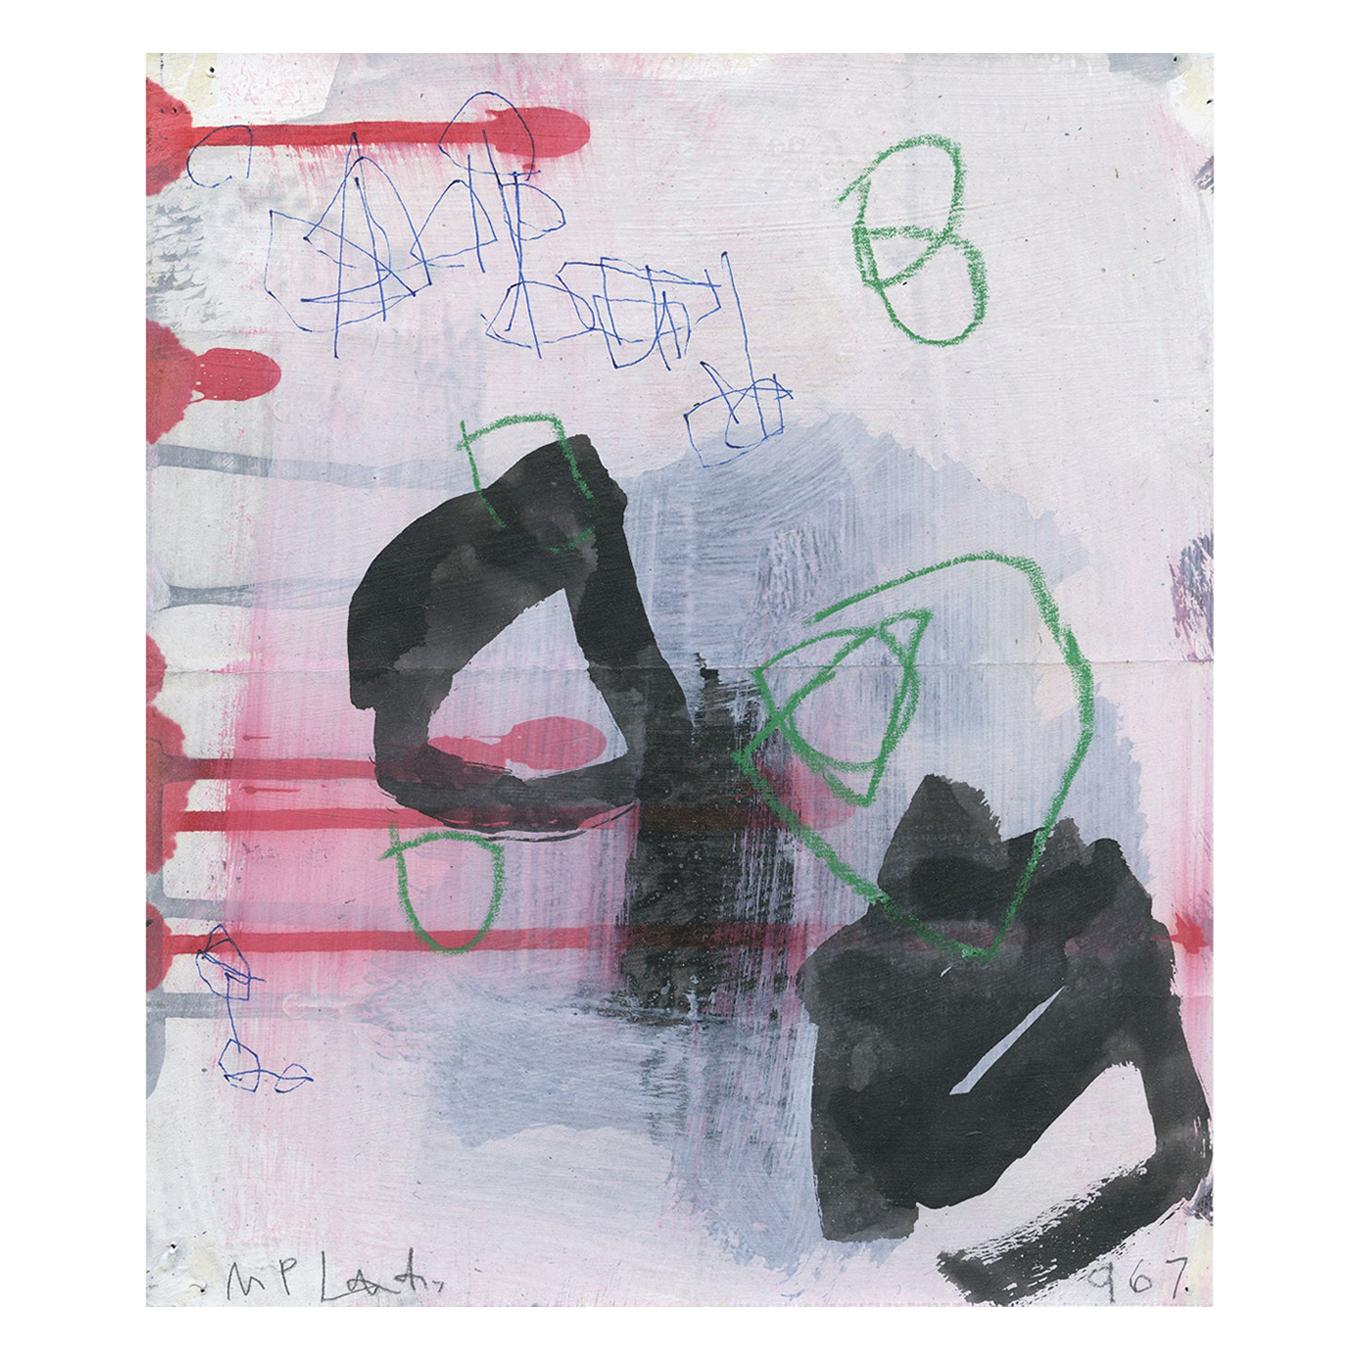 """""""WD967"""" Abstract Work on Paper by M. P. Landis, Warehouse Drawing Series"""